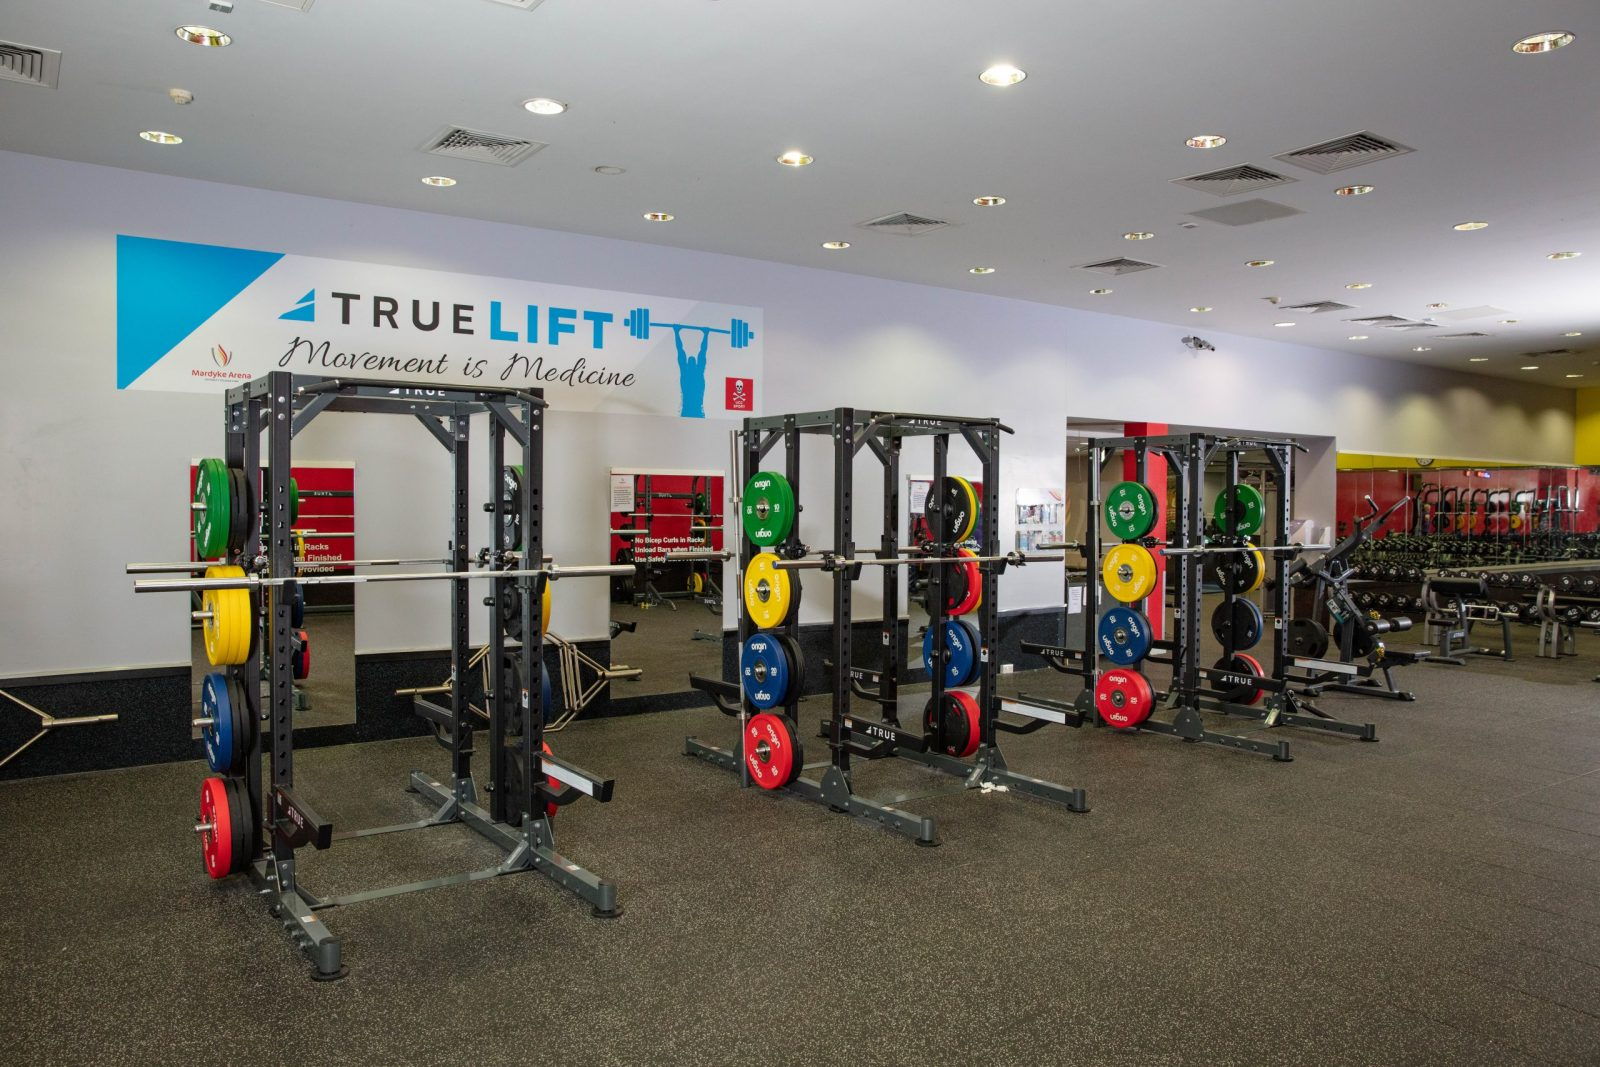 weight racks on a gym floor